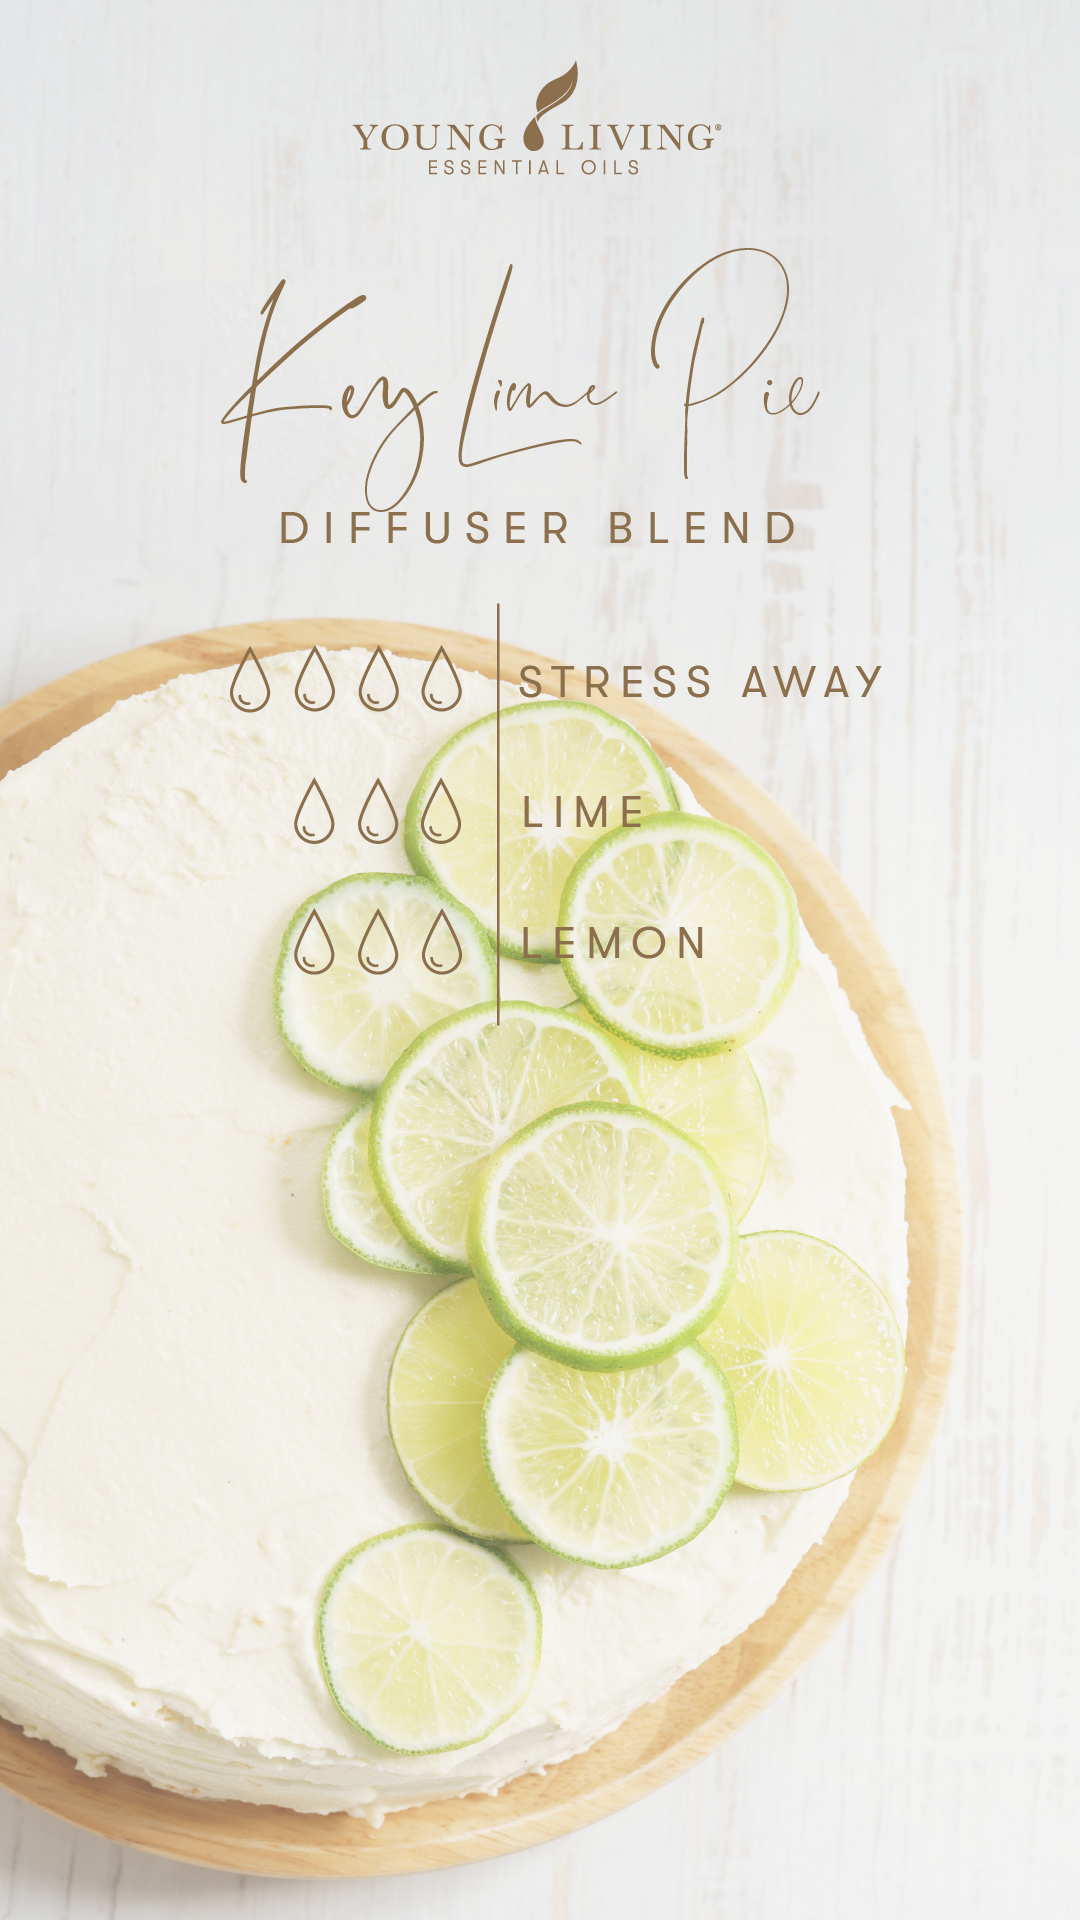 4 drops Stress Away 3 drops Lime 3 drops Lemon